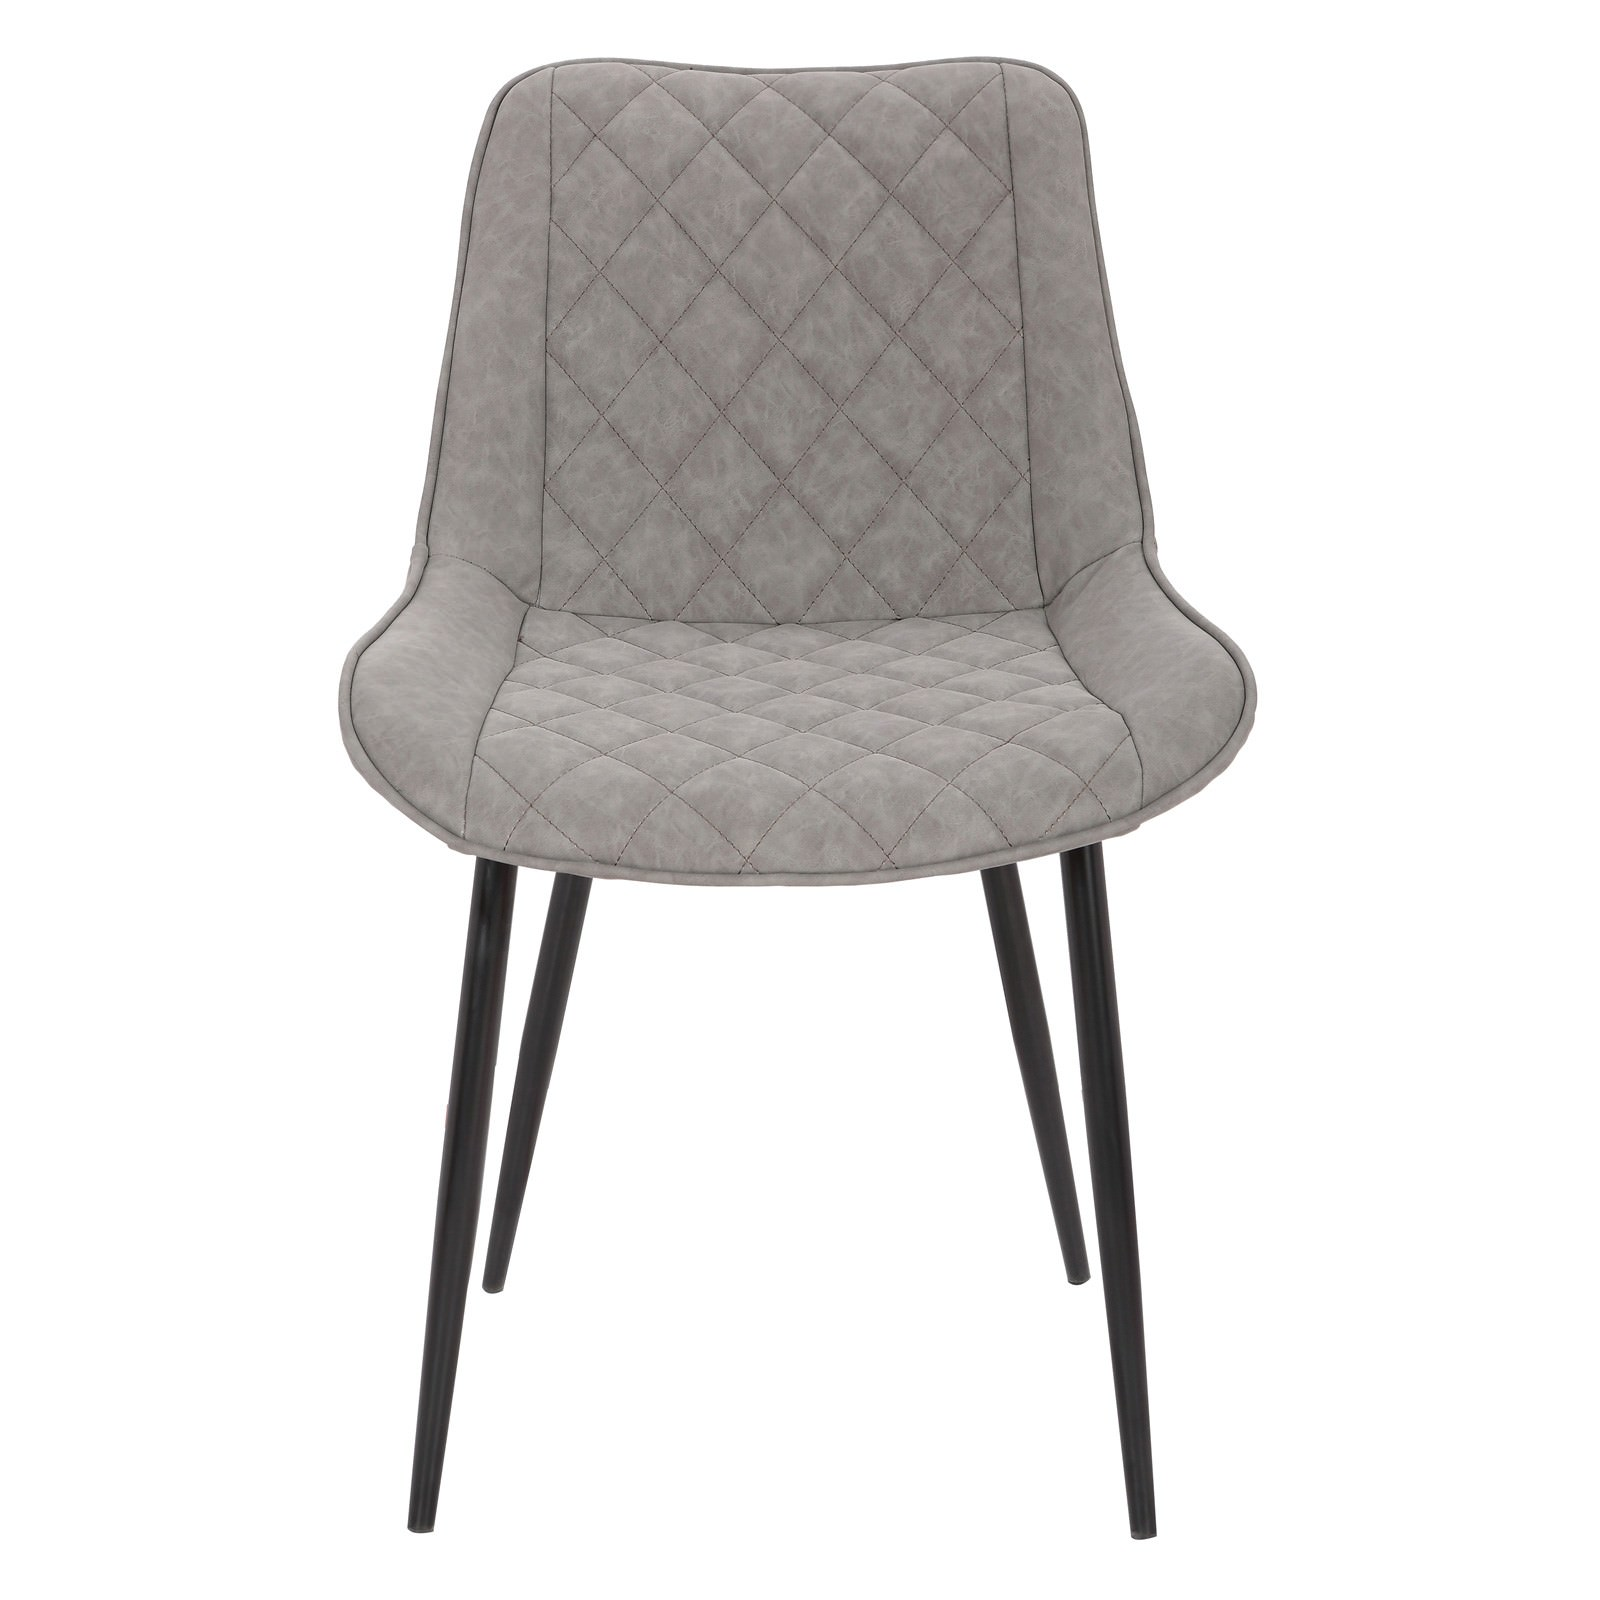 Lyon Commercial Grade Faux Leather Dining Armchair, Grey